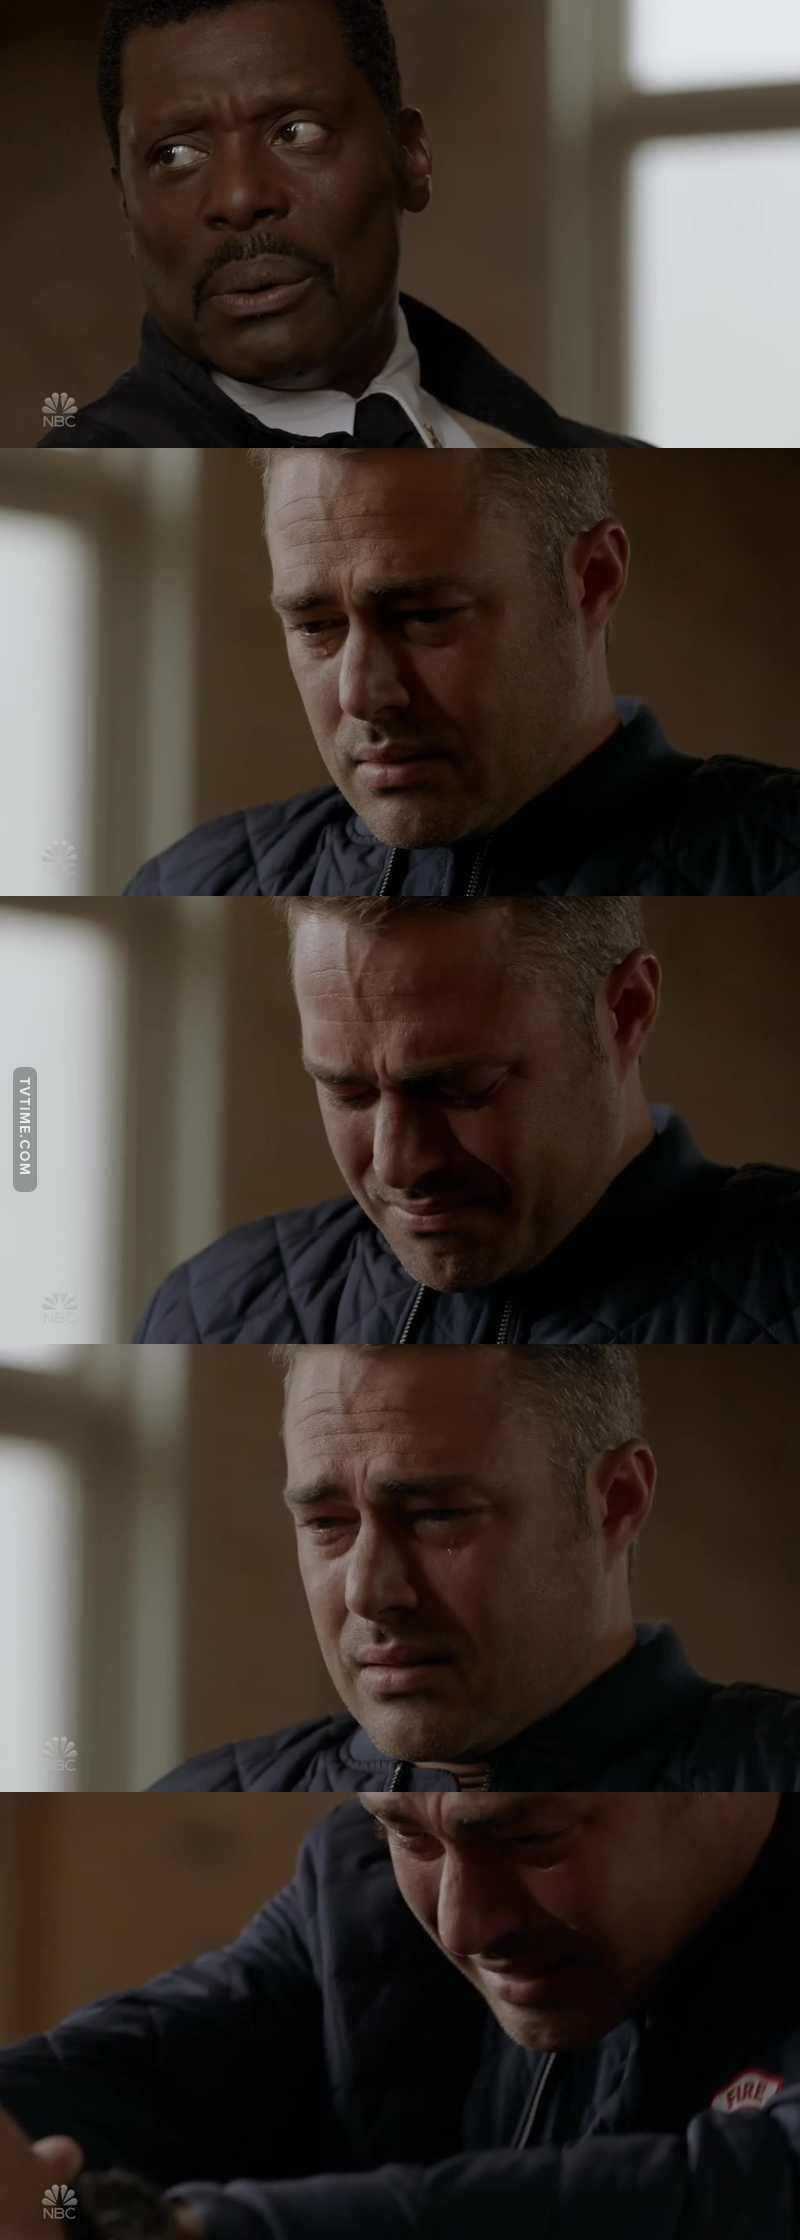 My baby is crying poorkellyseveride